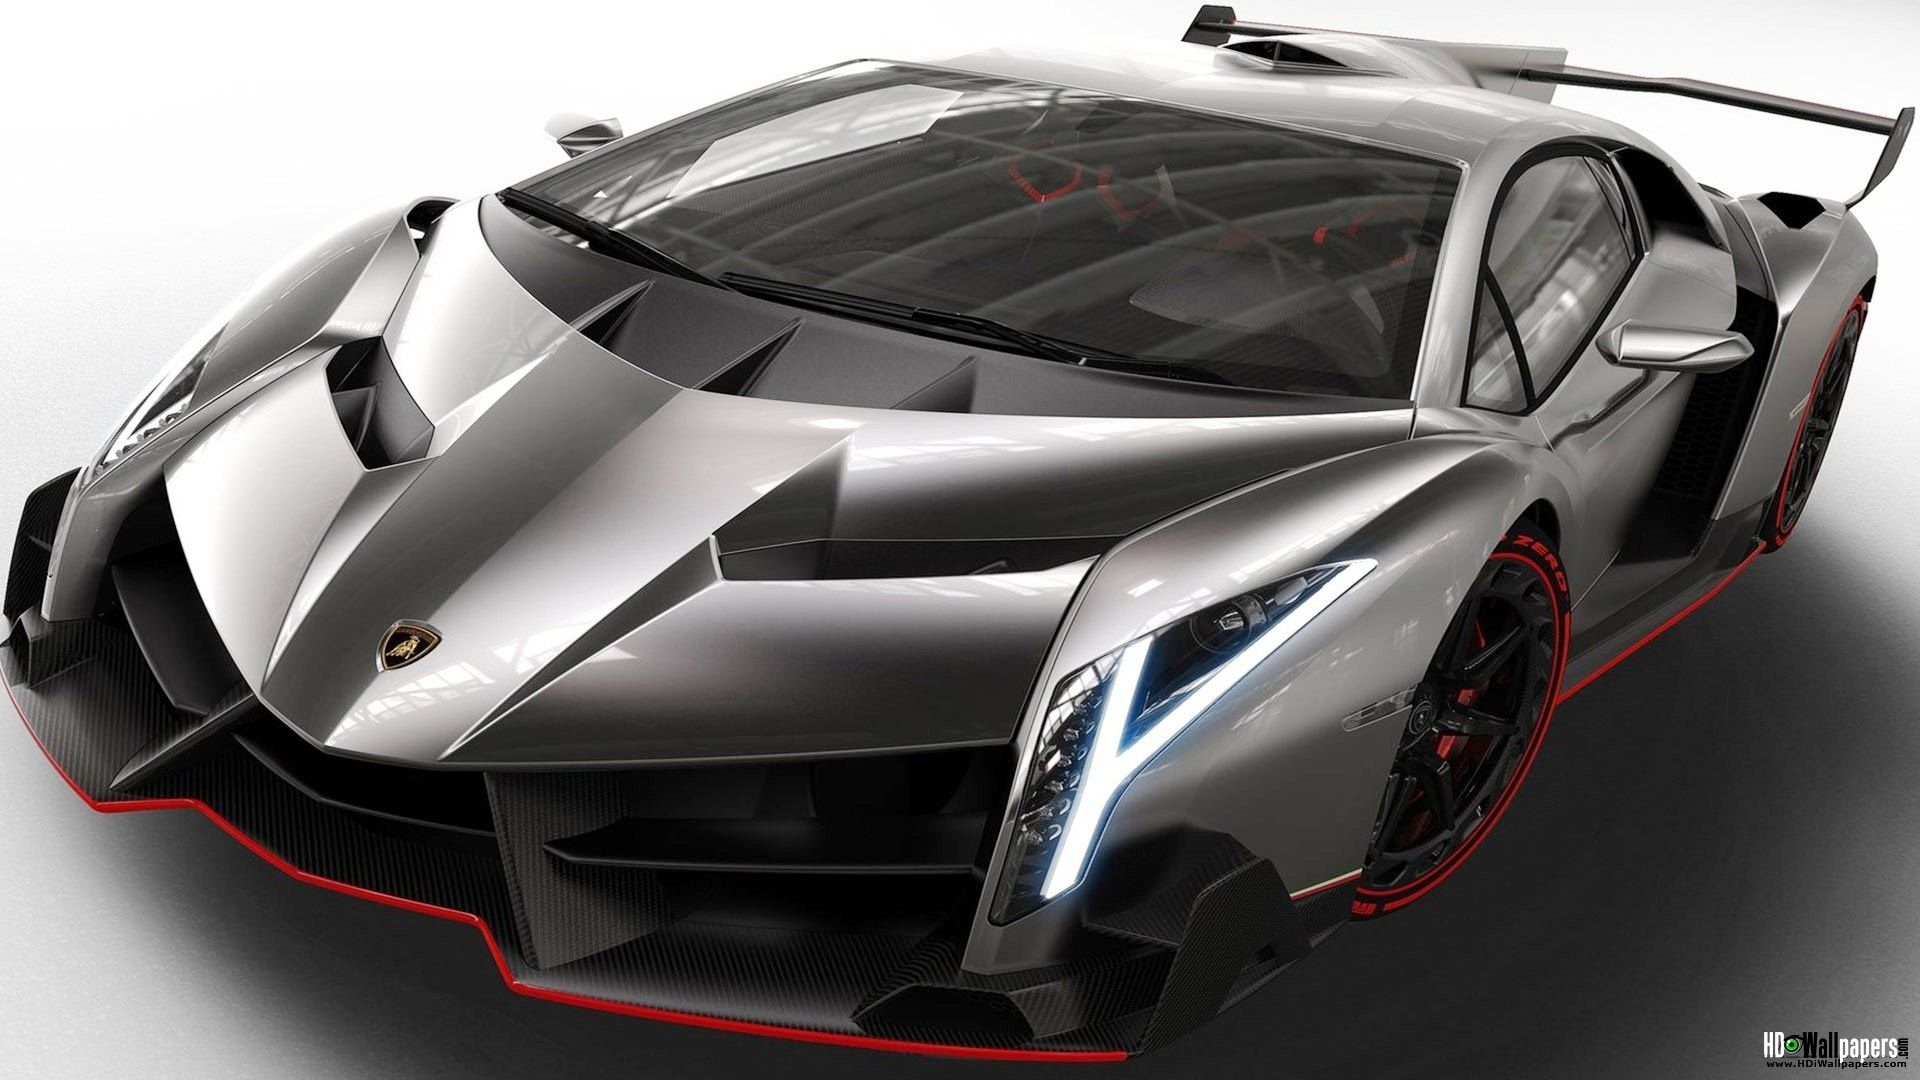 Fastest cars in the world top 10 list 2014 2015 while most of